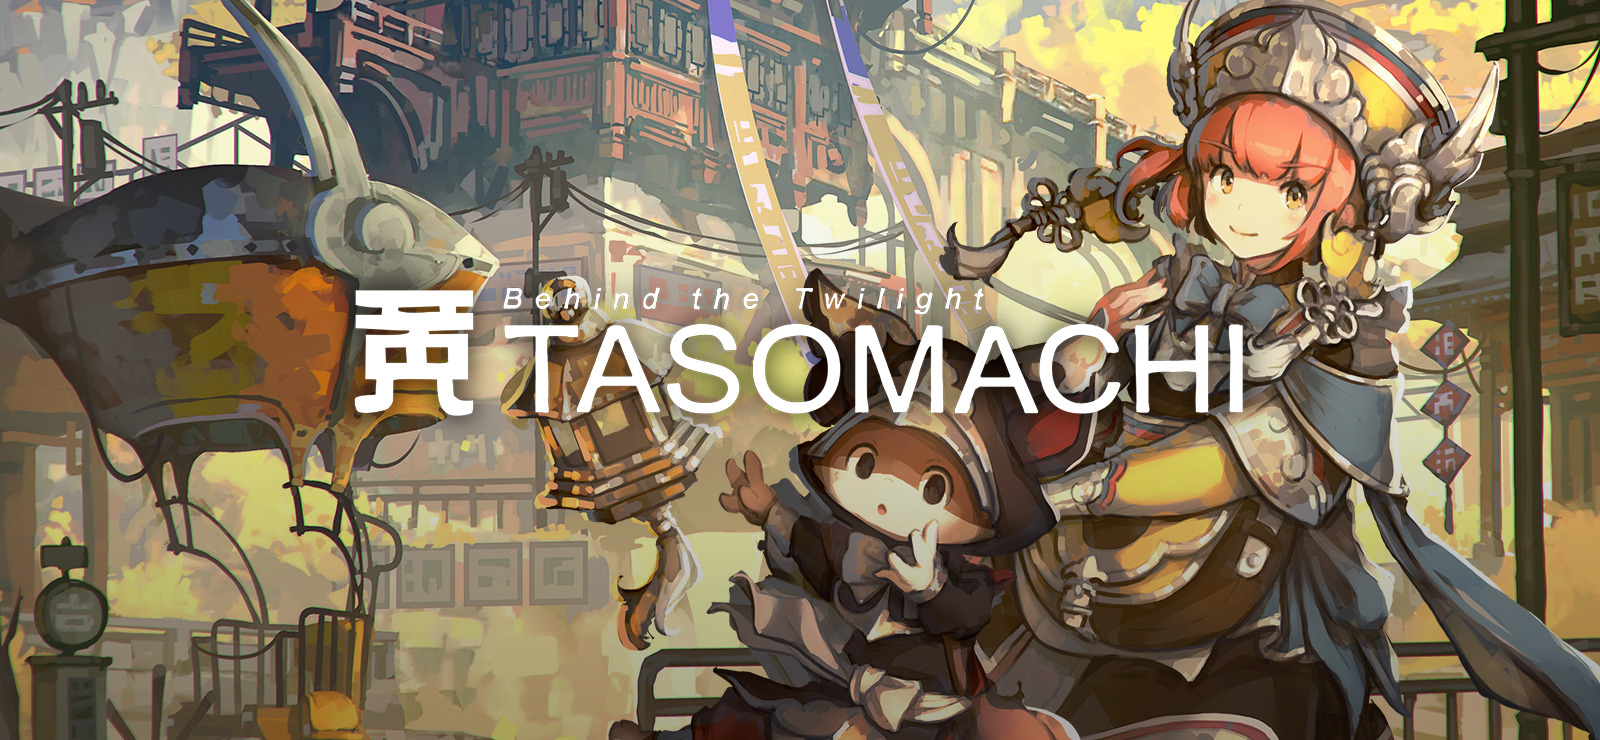 tasomachi-pc-cover